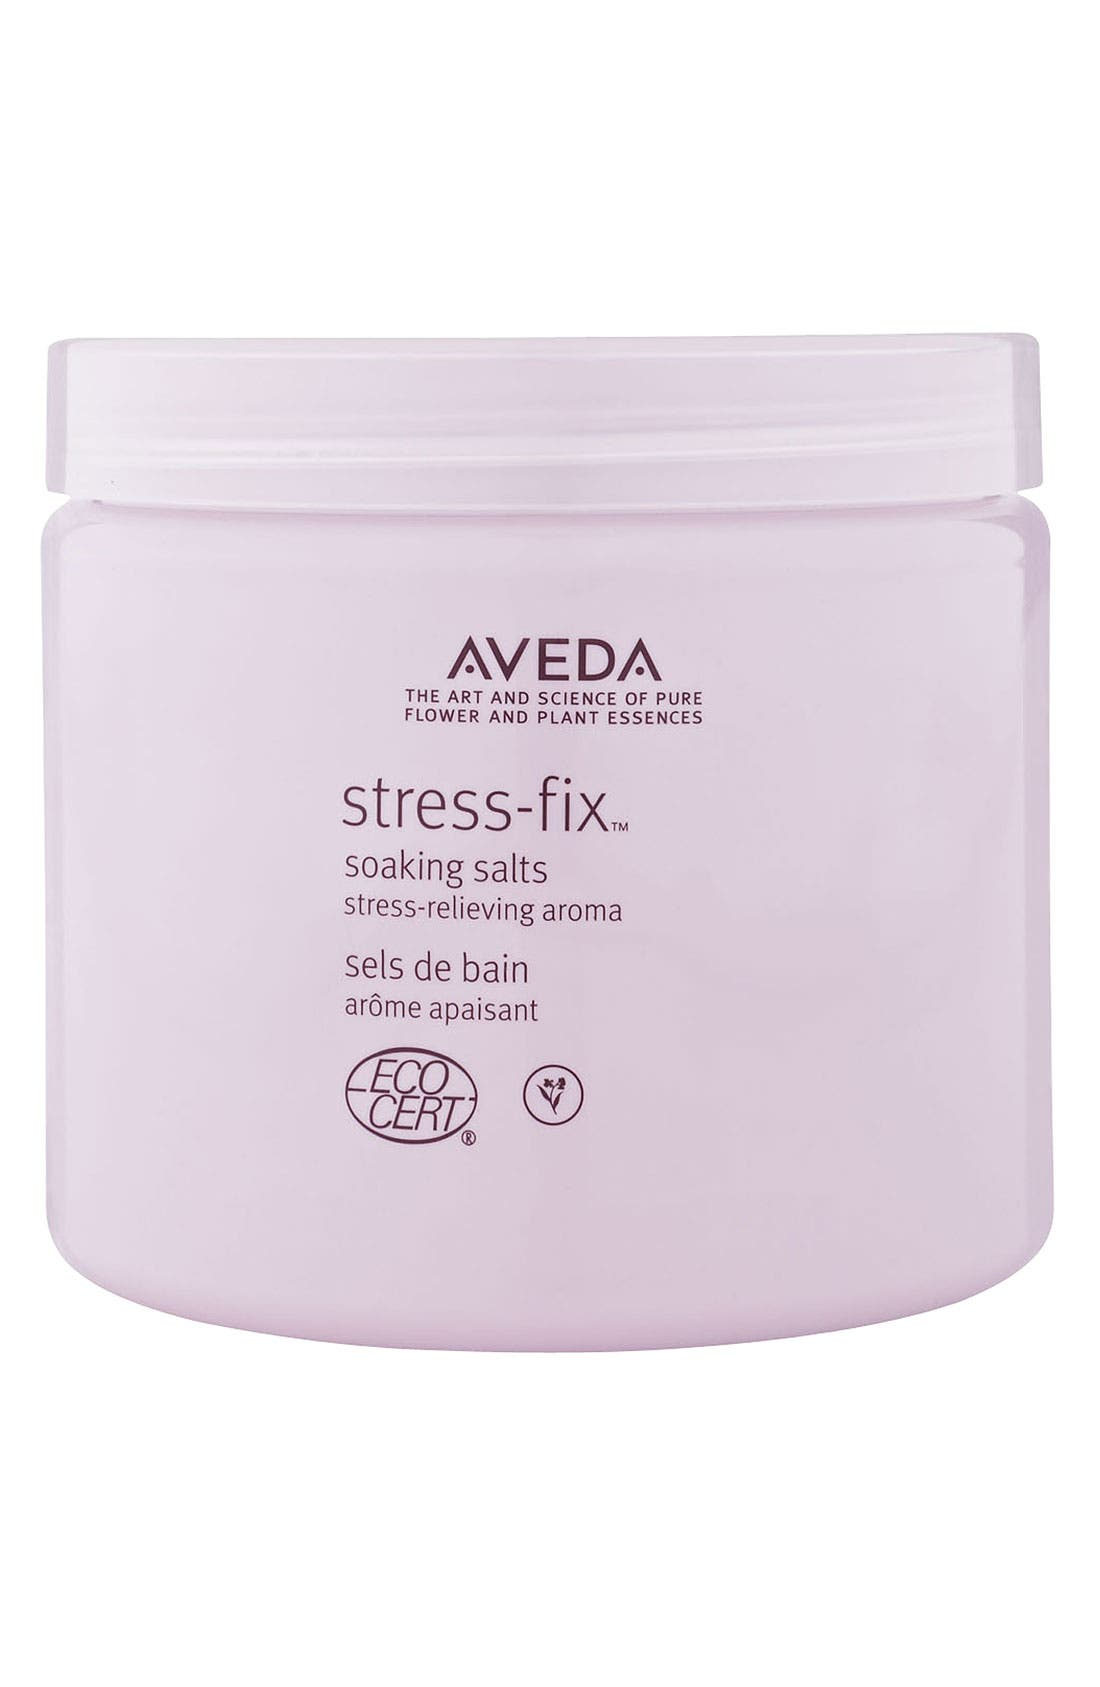 Aveda 'stress-fix™' Soaking Salts